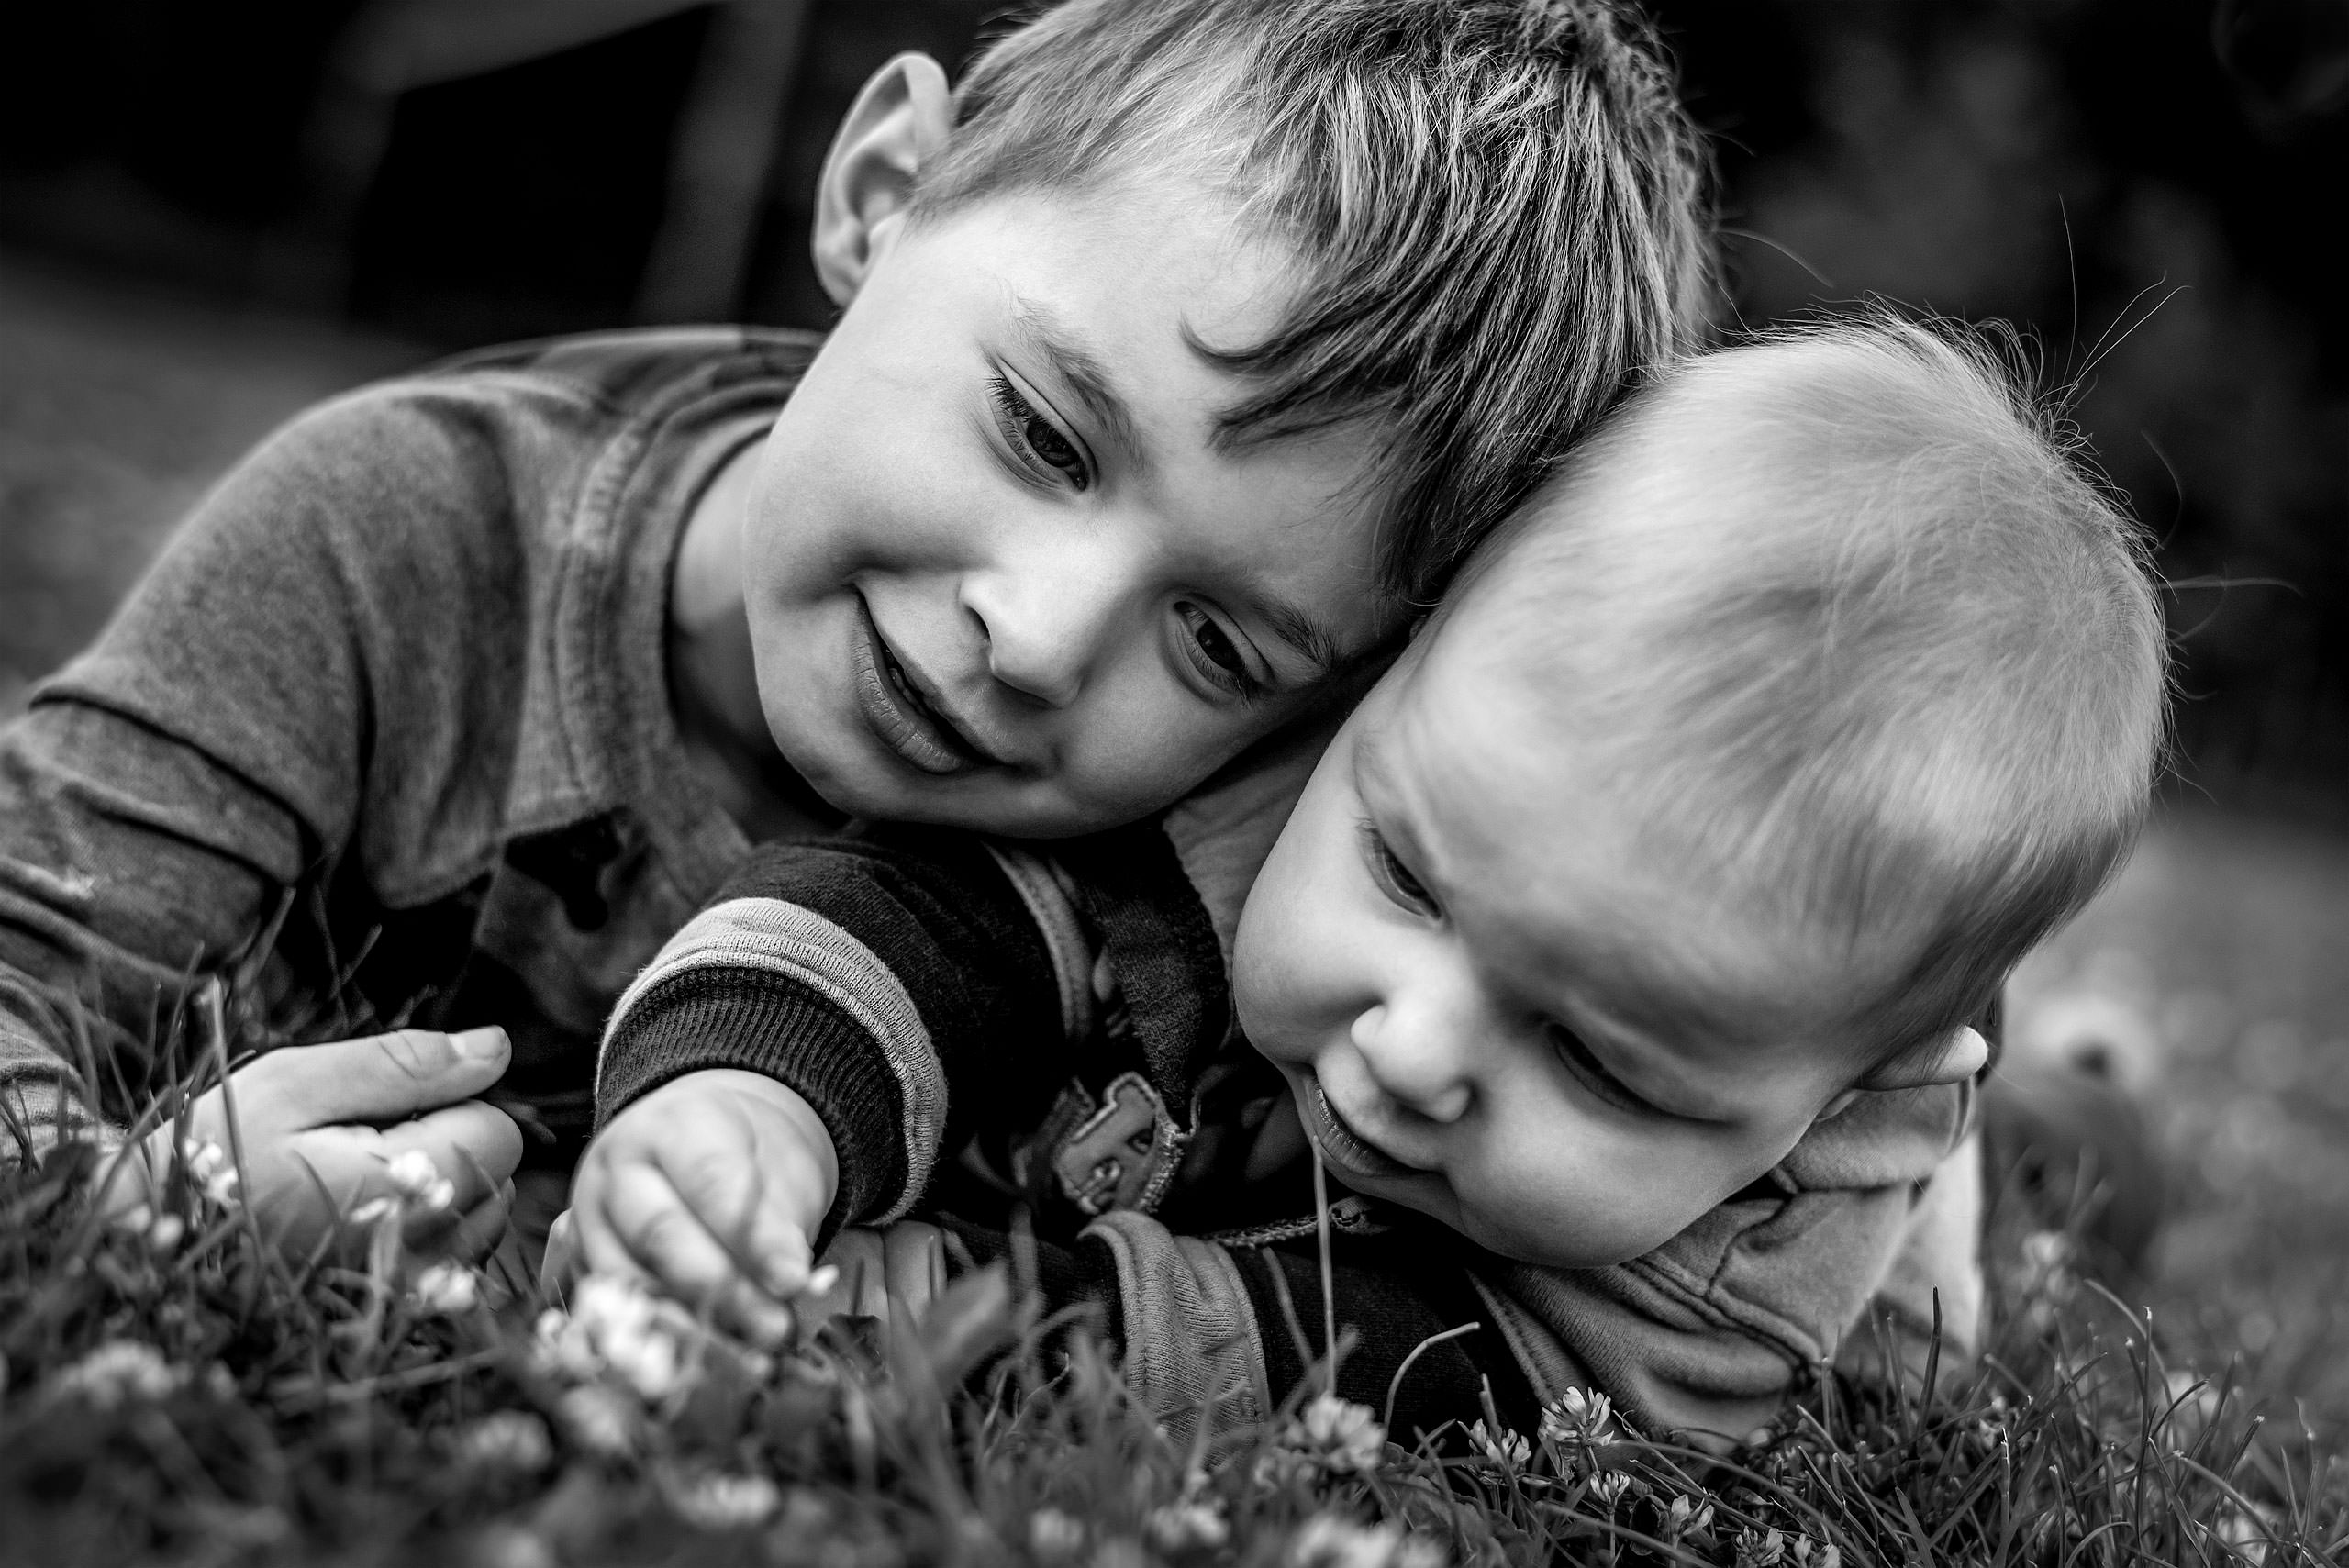 two young boys lying down in the grass playing with a flower - calgary sean leblanc wedding photographers